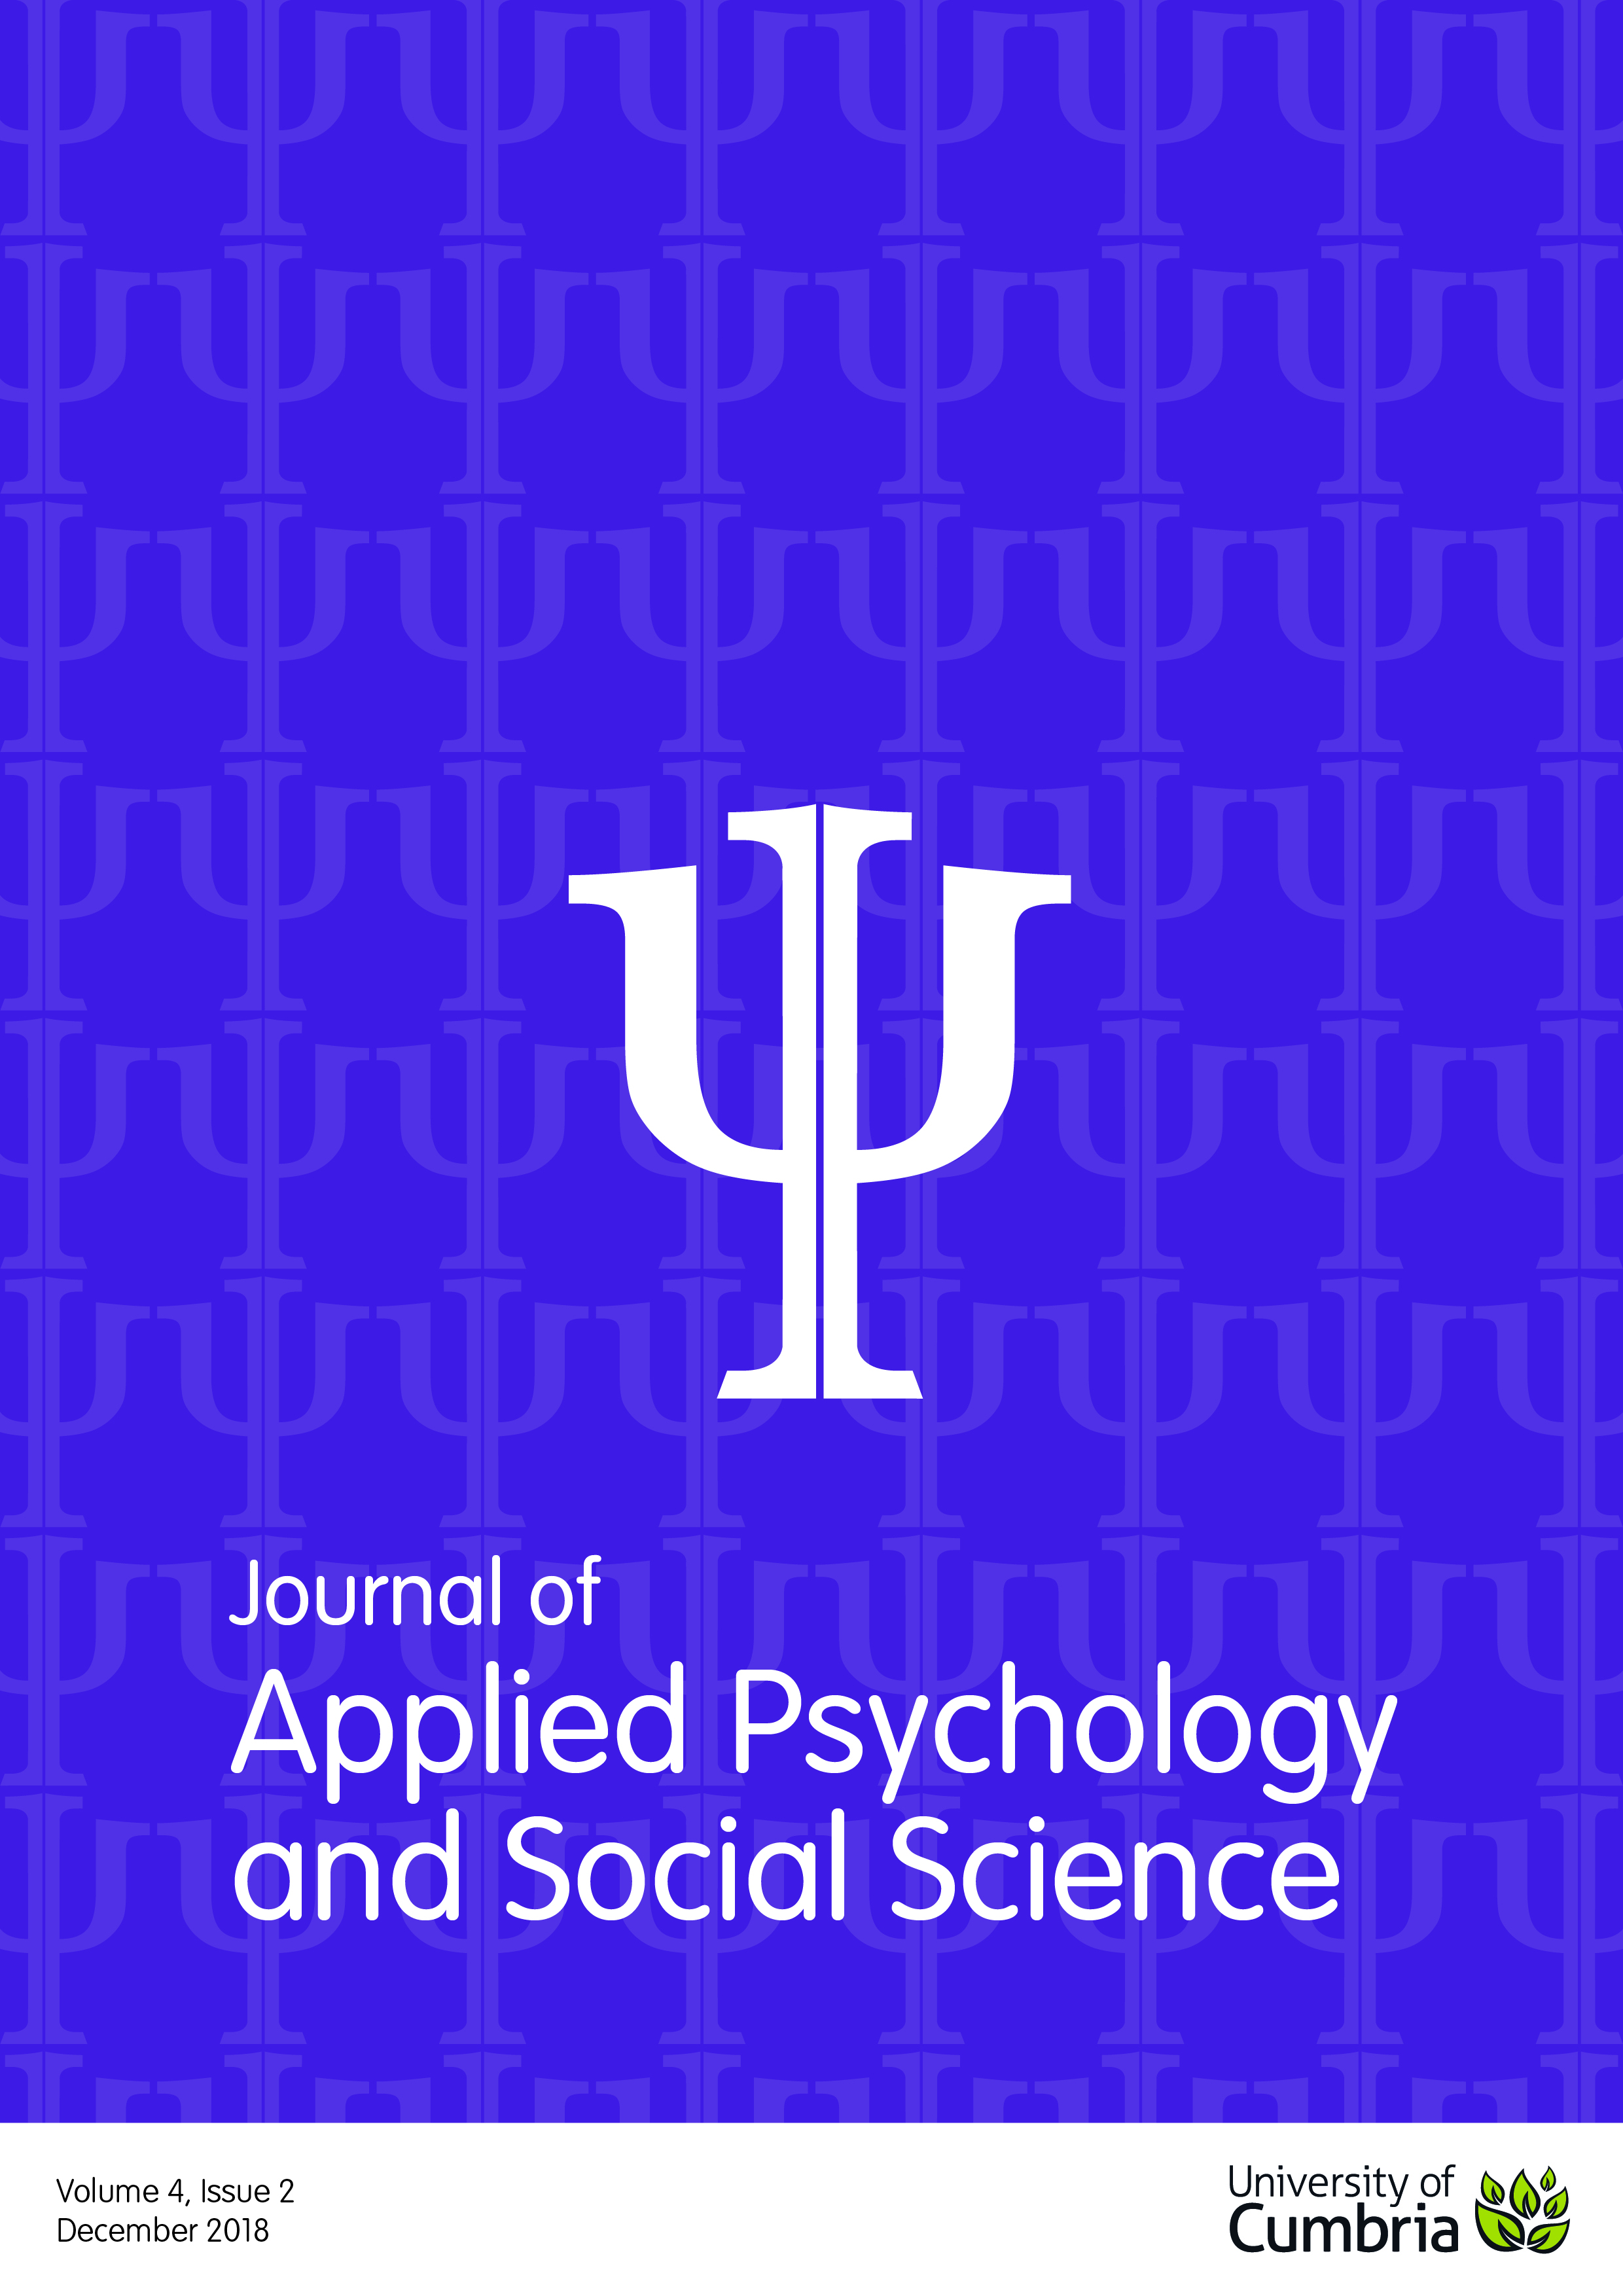 Journal of Applied Psychology and Social Science